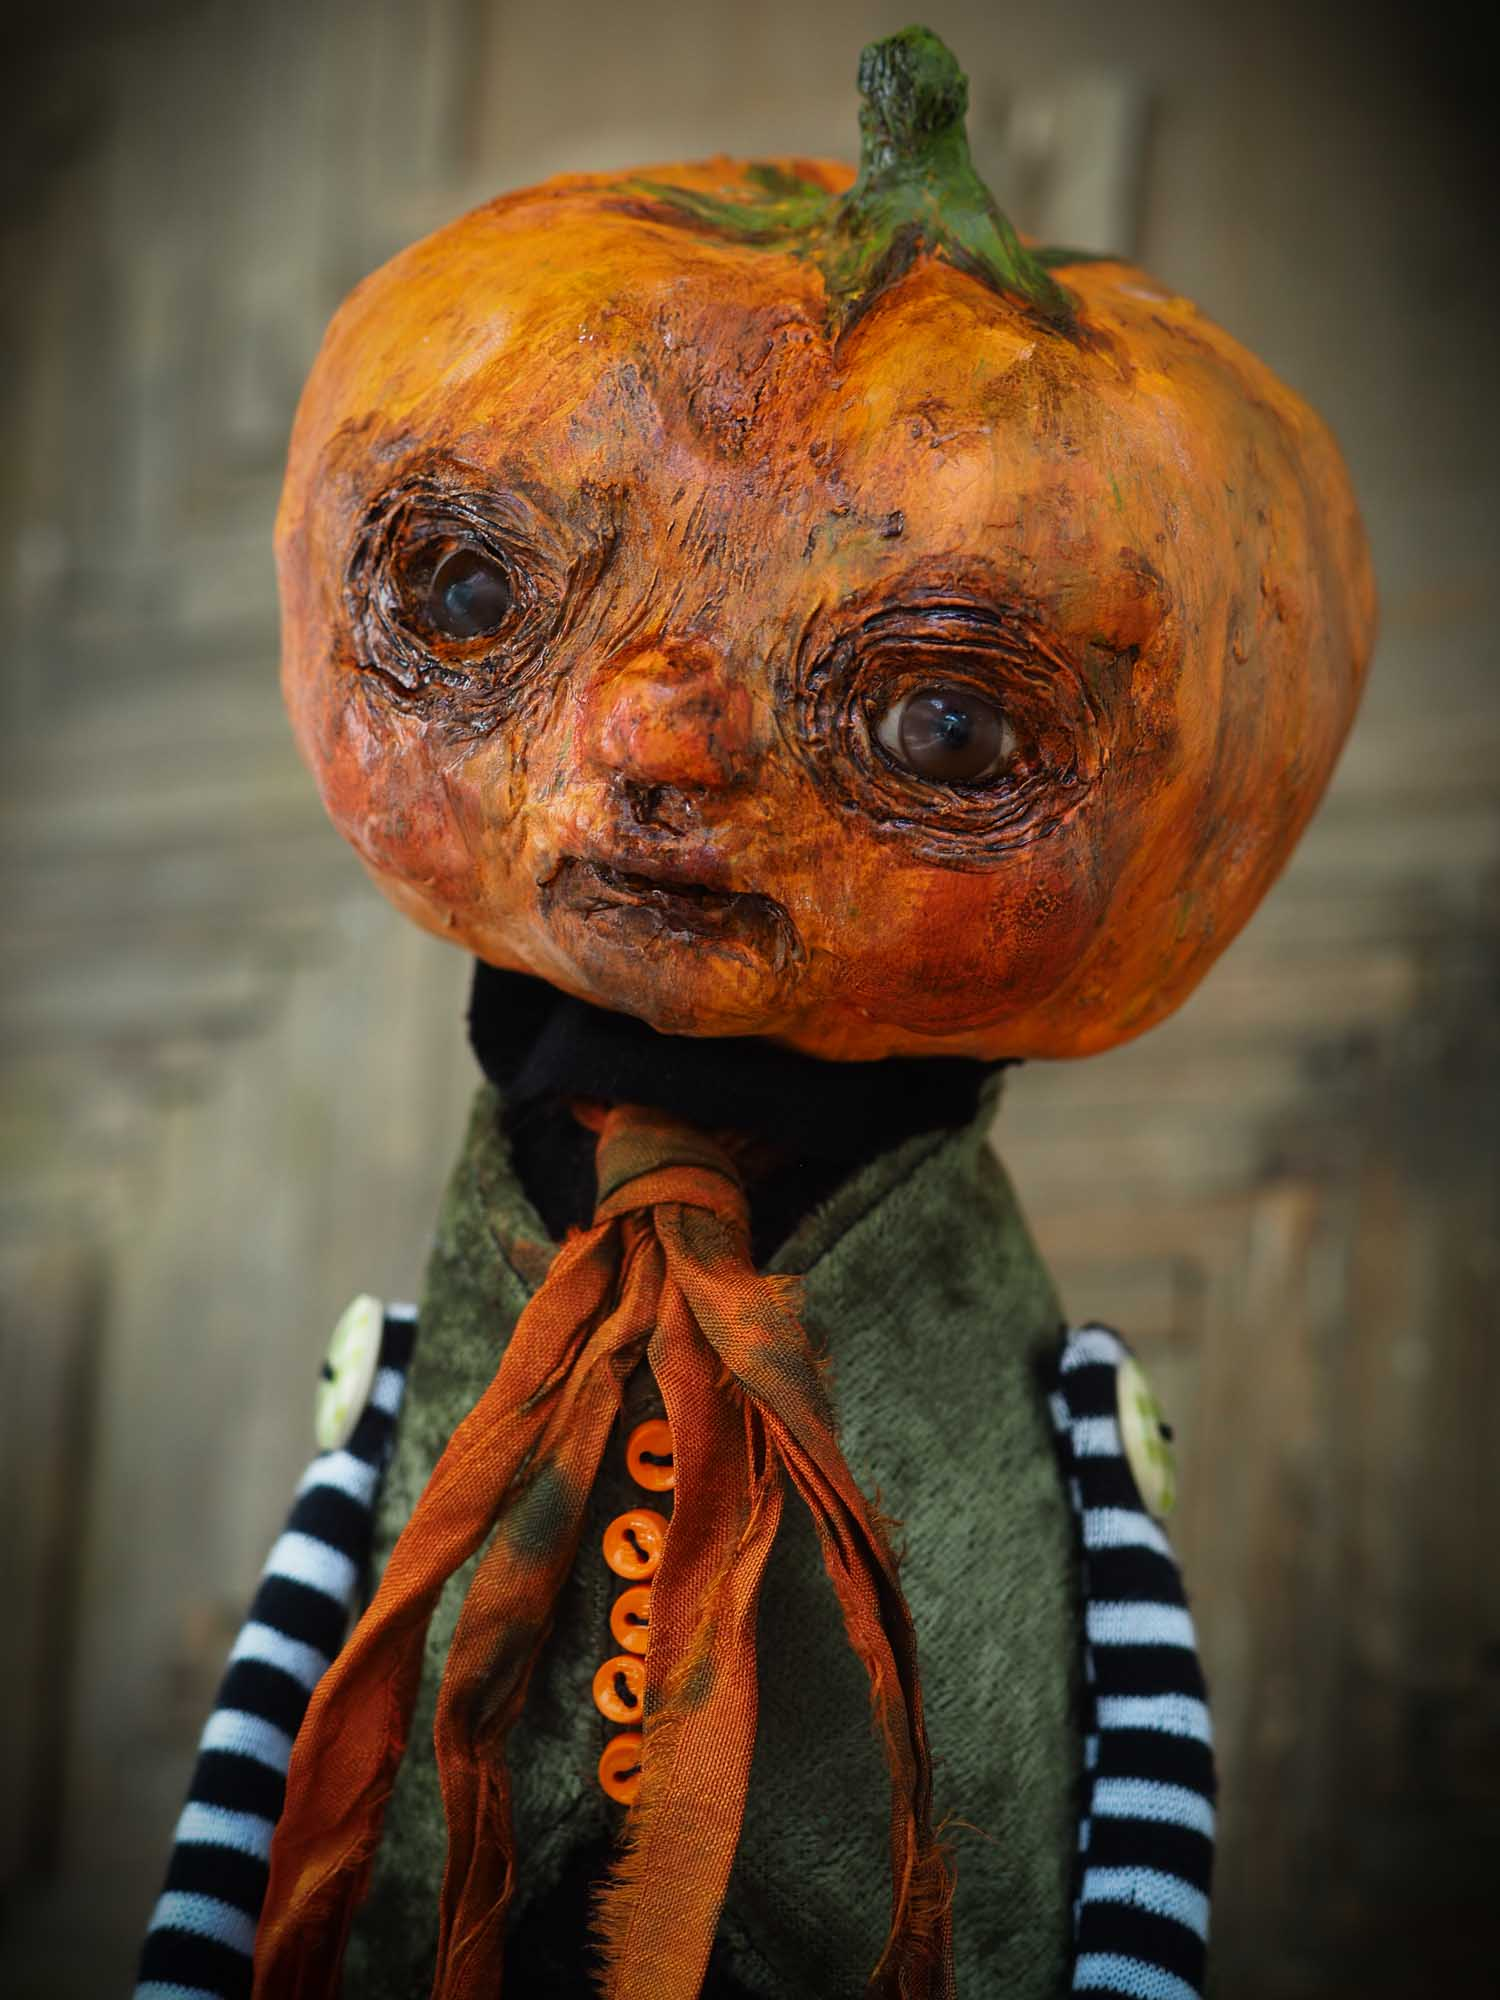 A witch transformed a boy into a Halloween pumpkin monster. This Danita original doll is a handmade jack-o-lantern soft sculpture as home decoration ornament. Carefully handmade with whimsical folk art roots, the spooky ghosts, witches, vampires, ghouls, and jack-o-lantern art dolls of Danita are full of mystery lore.